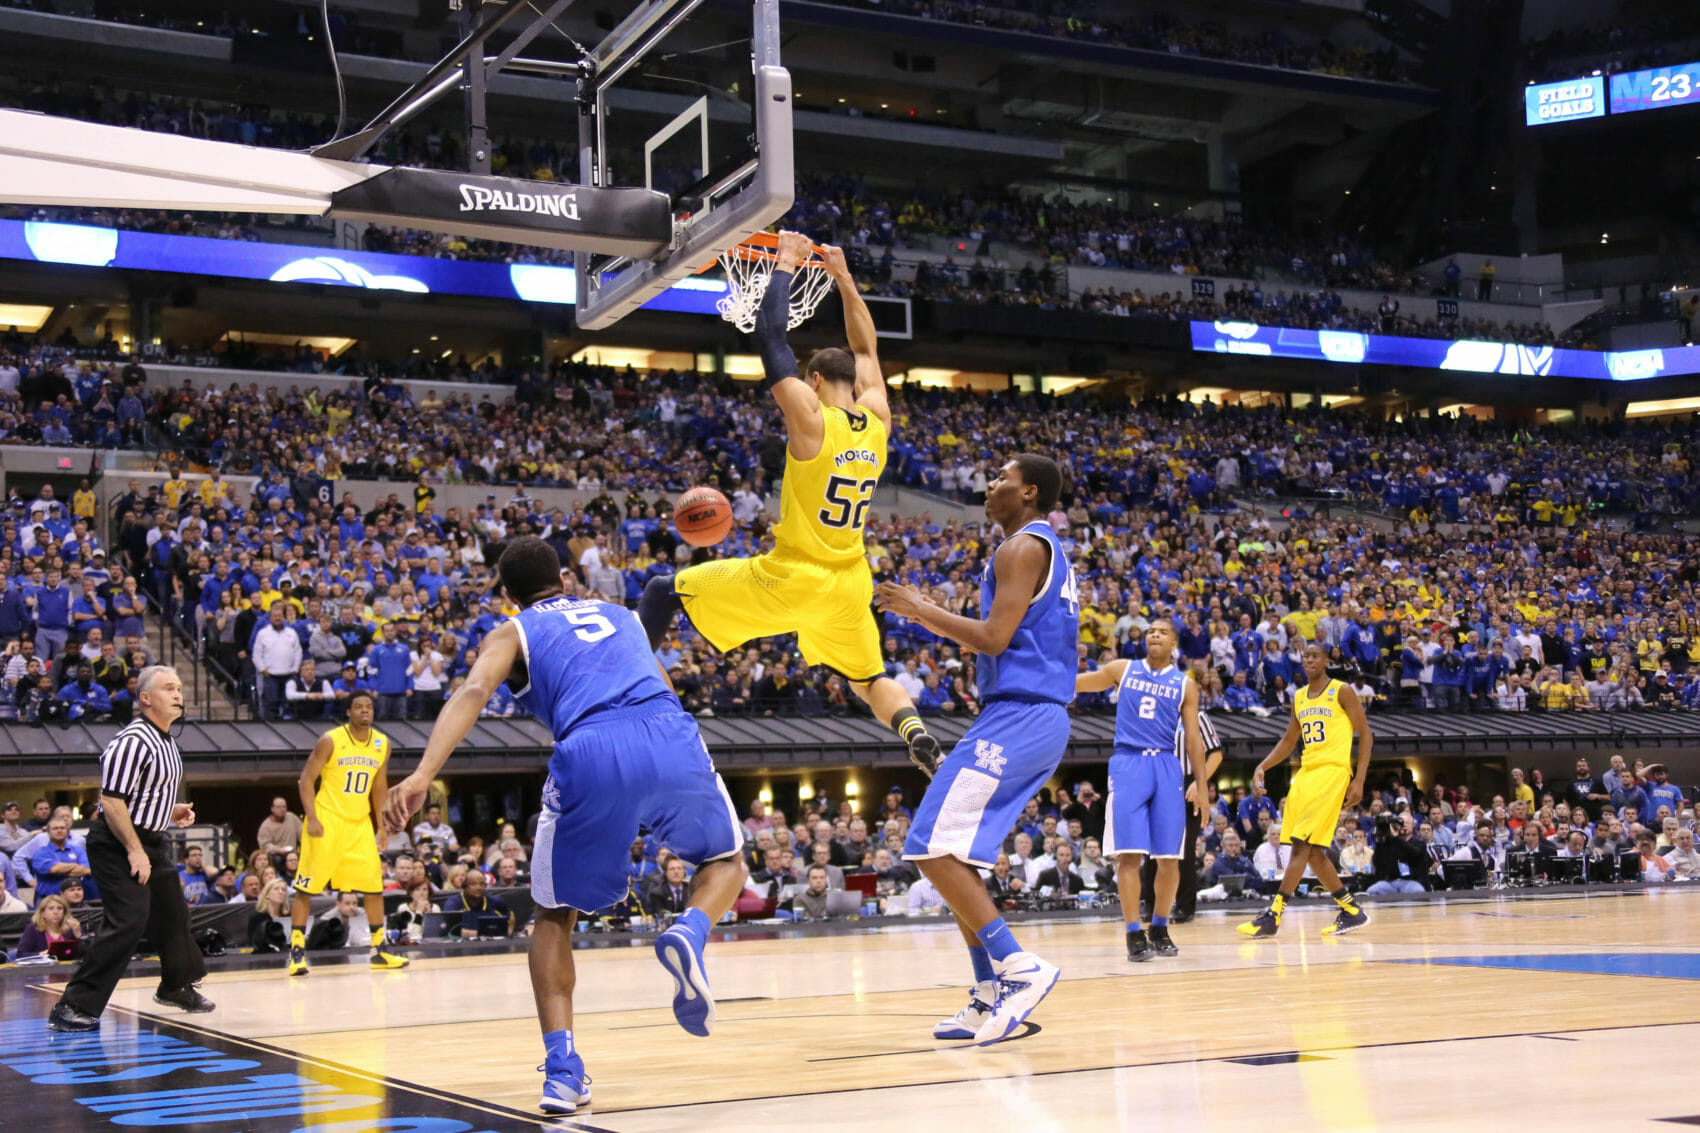 Kentucky 75, Michigan 72-36